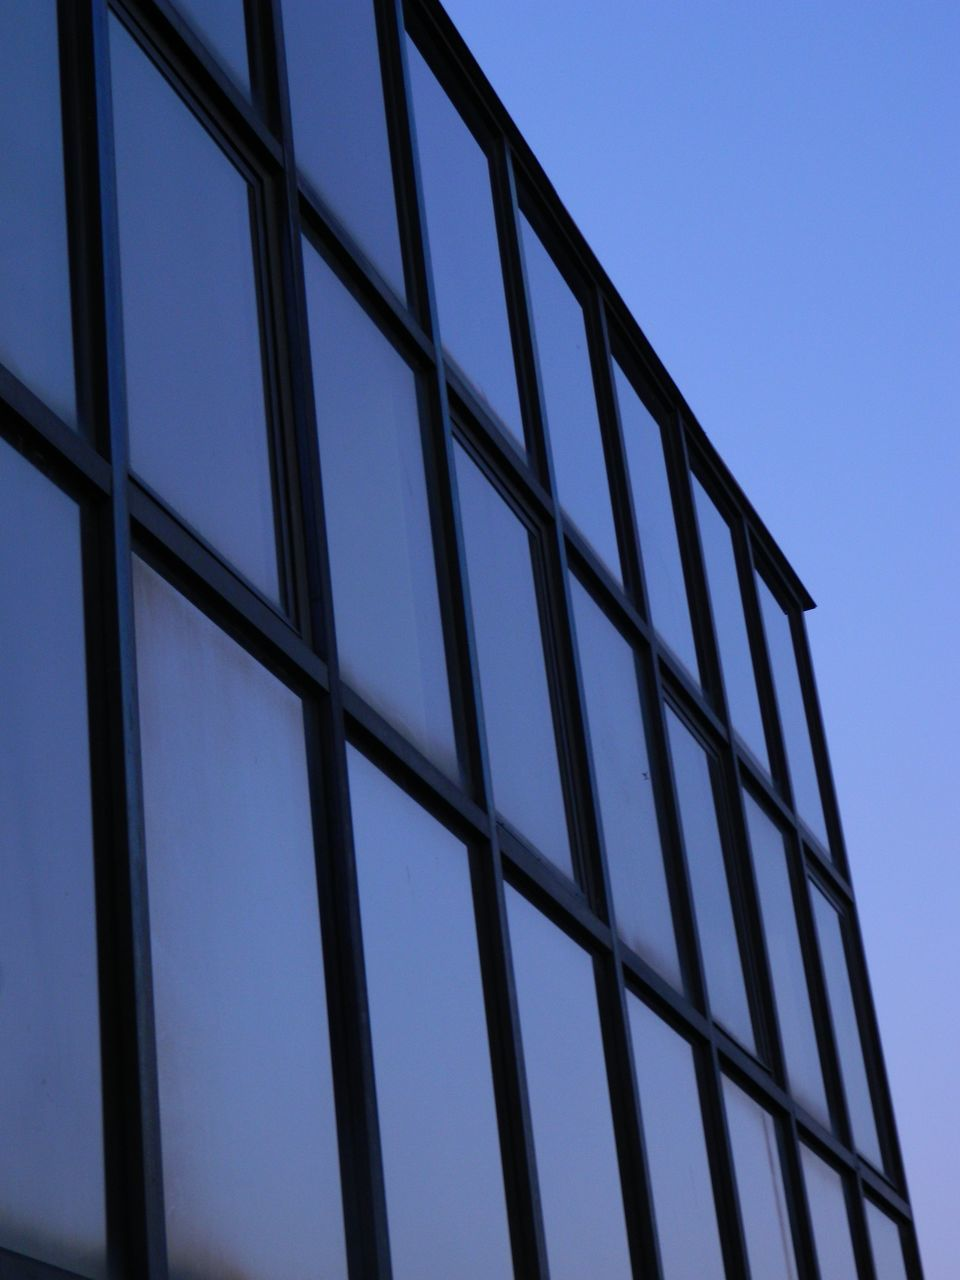 low angle view, window, day, built structure, no people, outdoors, architecture, clear sky, sky, building exterior, close-up